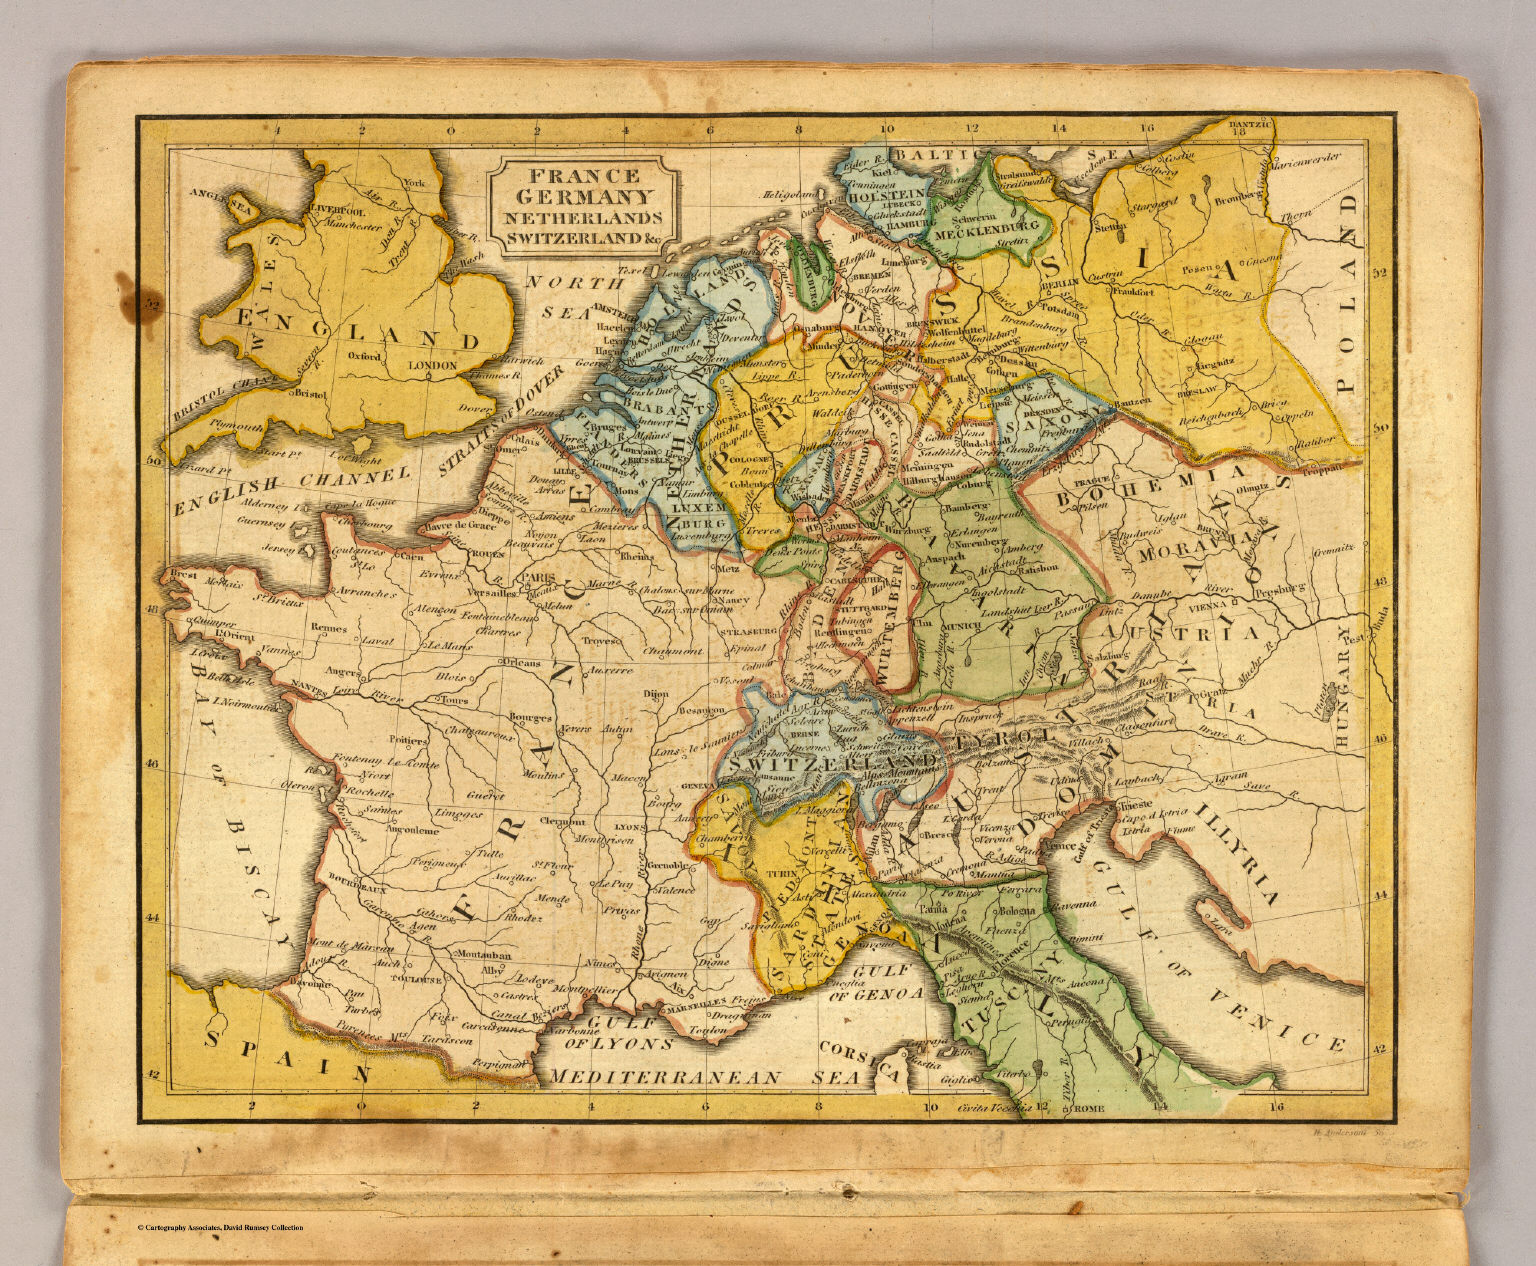 Map Of France Germany Switzerland.France Germany Netherlands Switzerland C David Rumsey